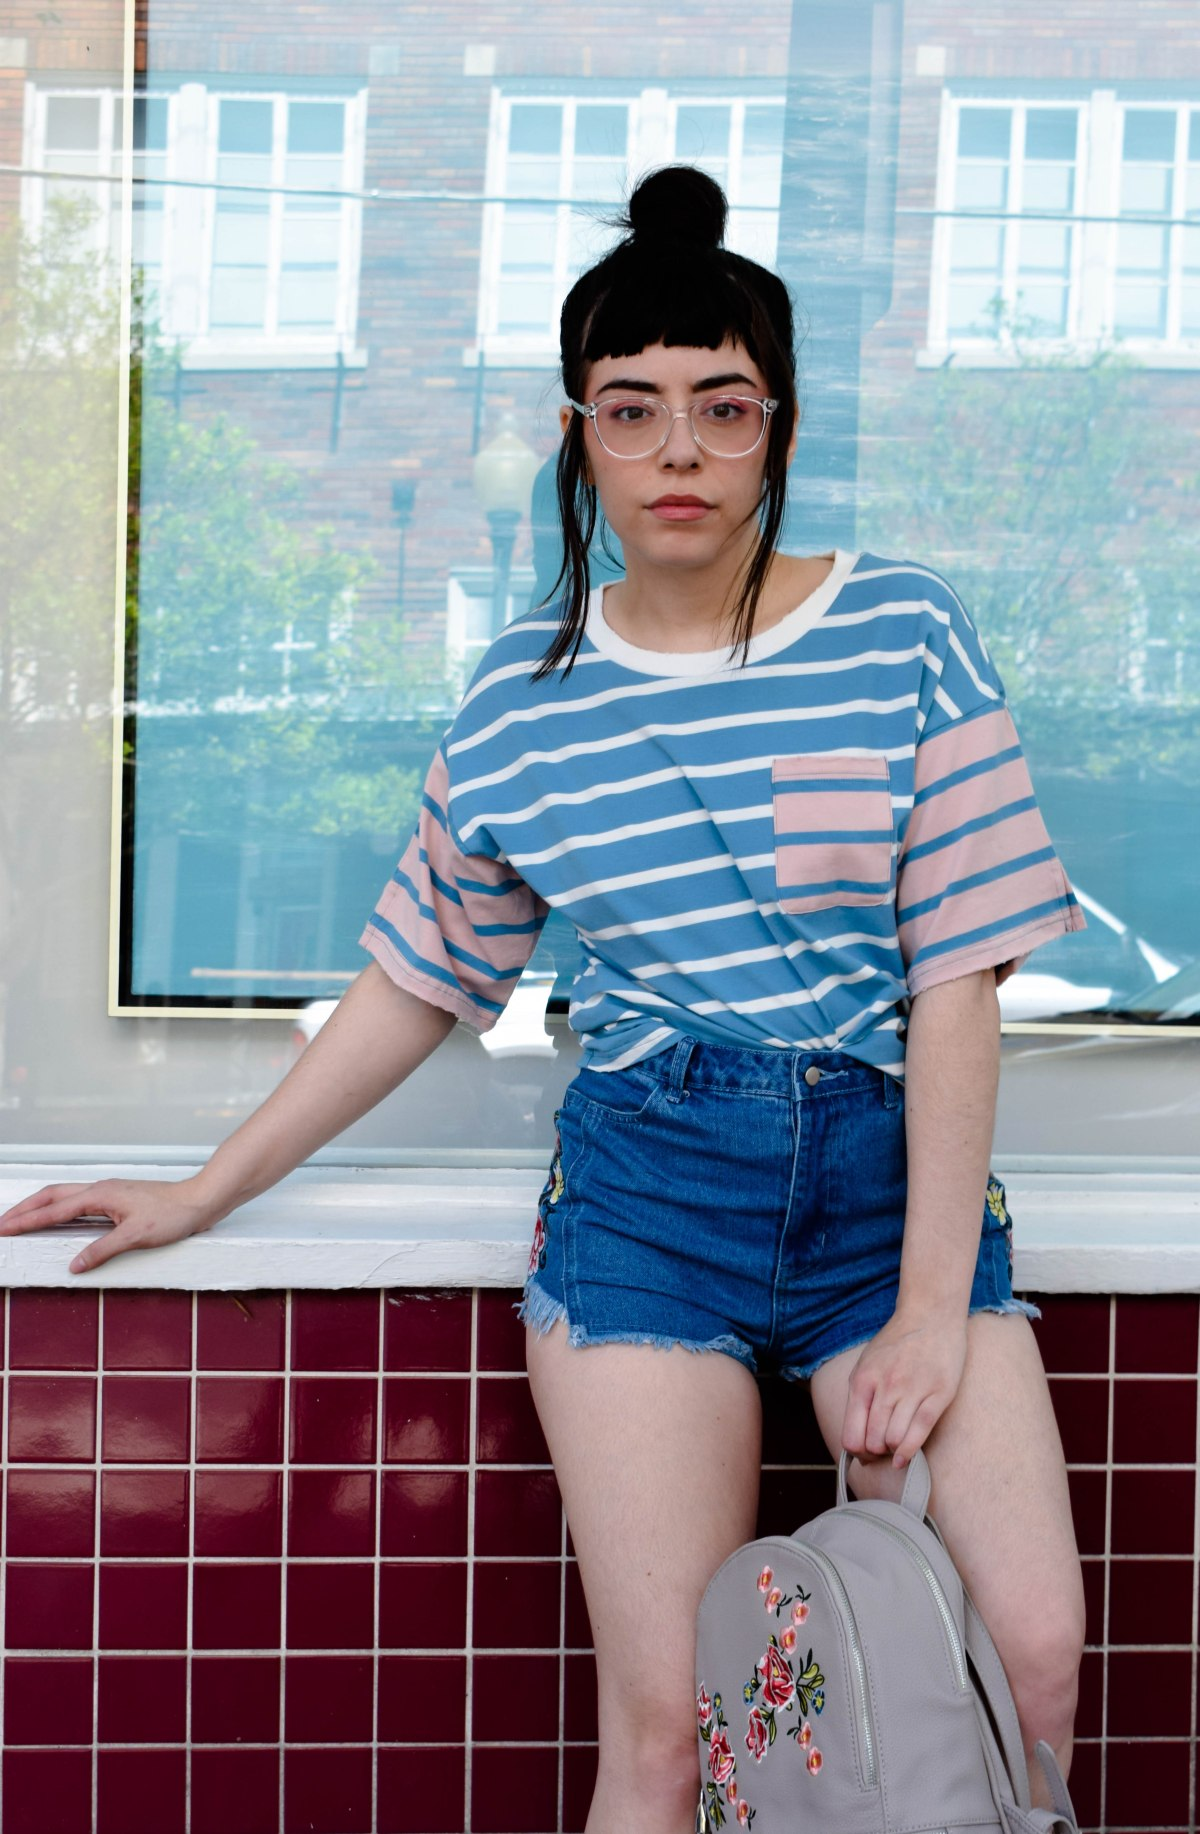 striped top (1 of 8)